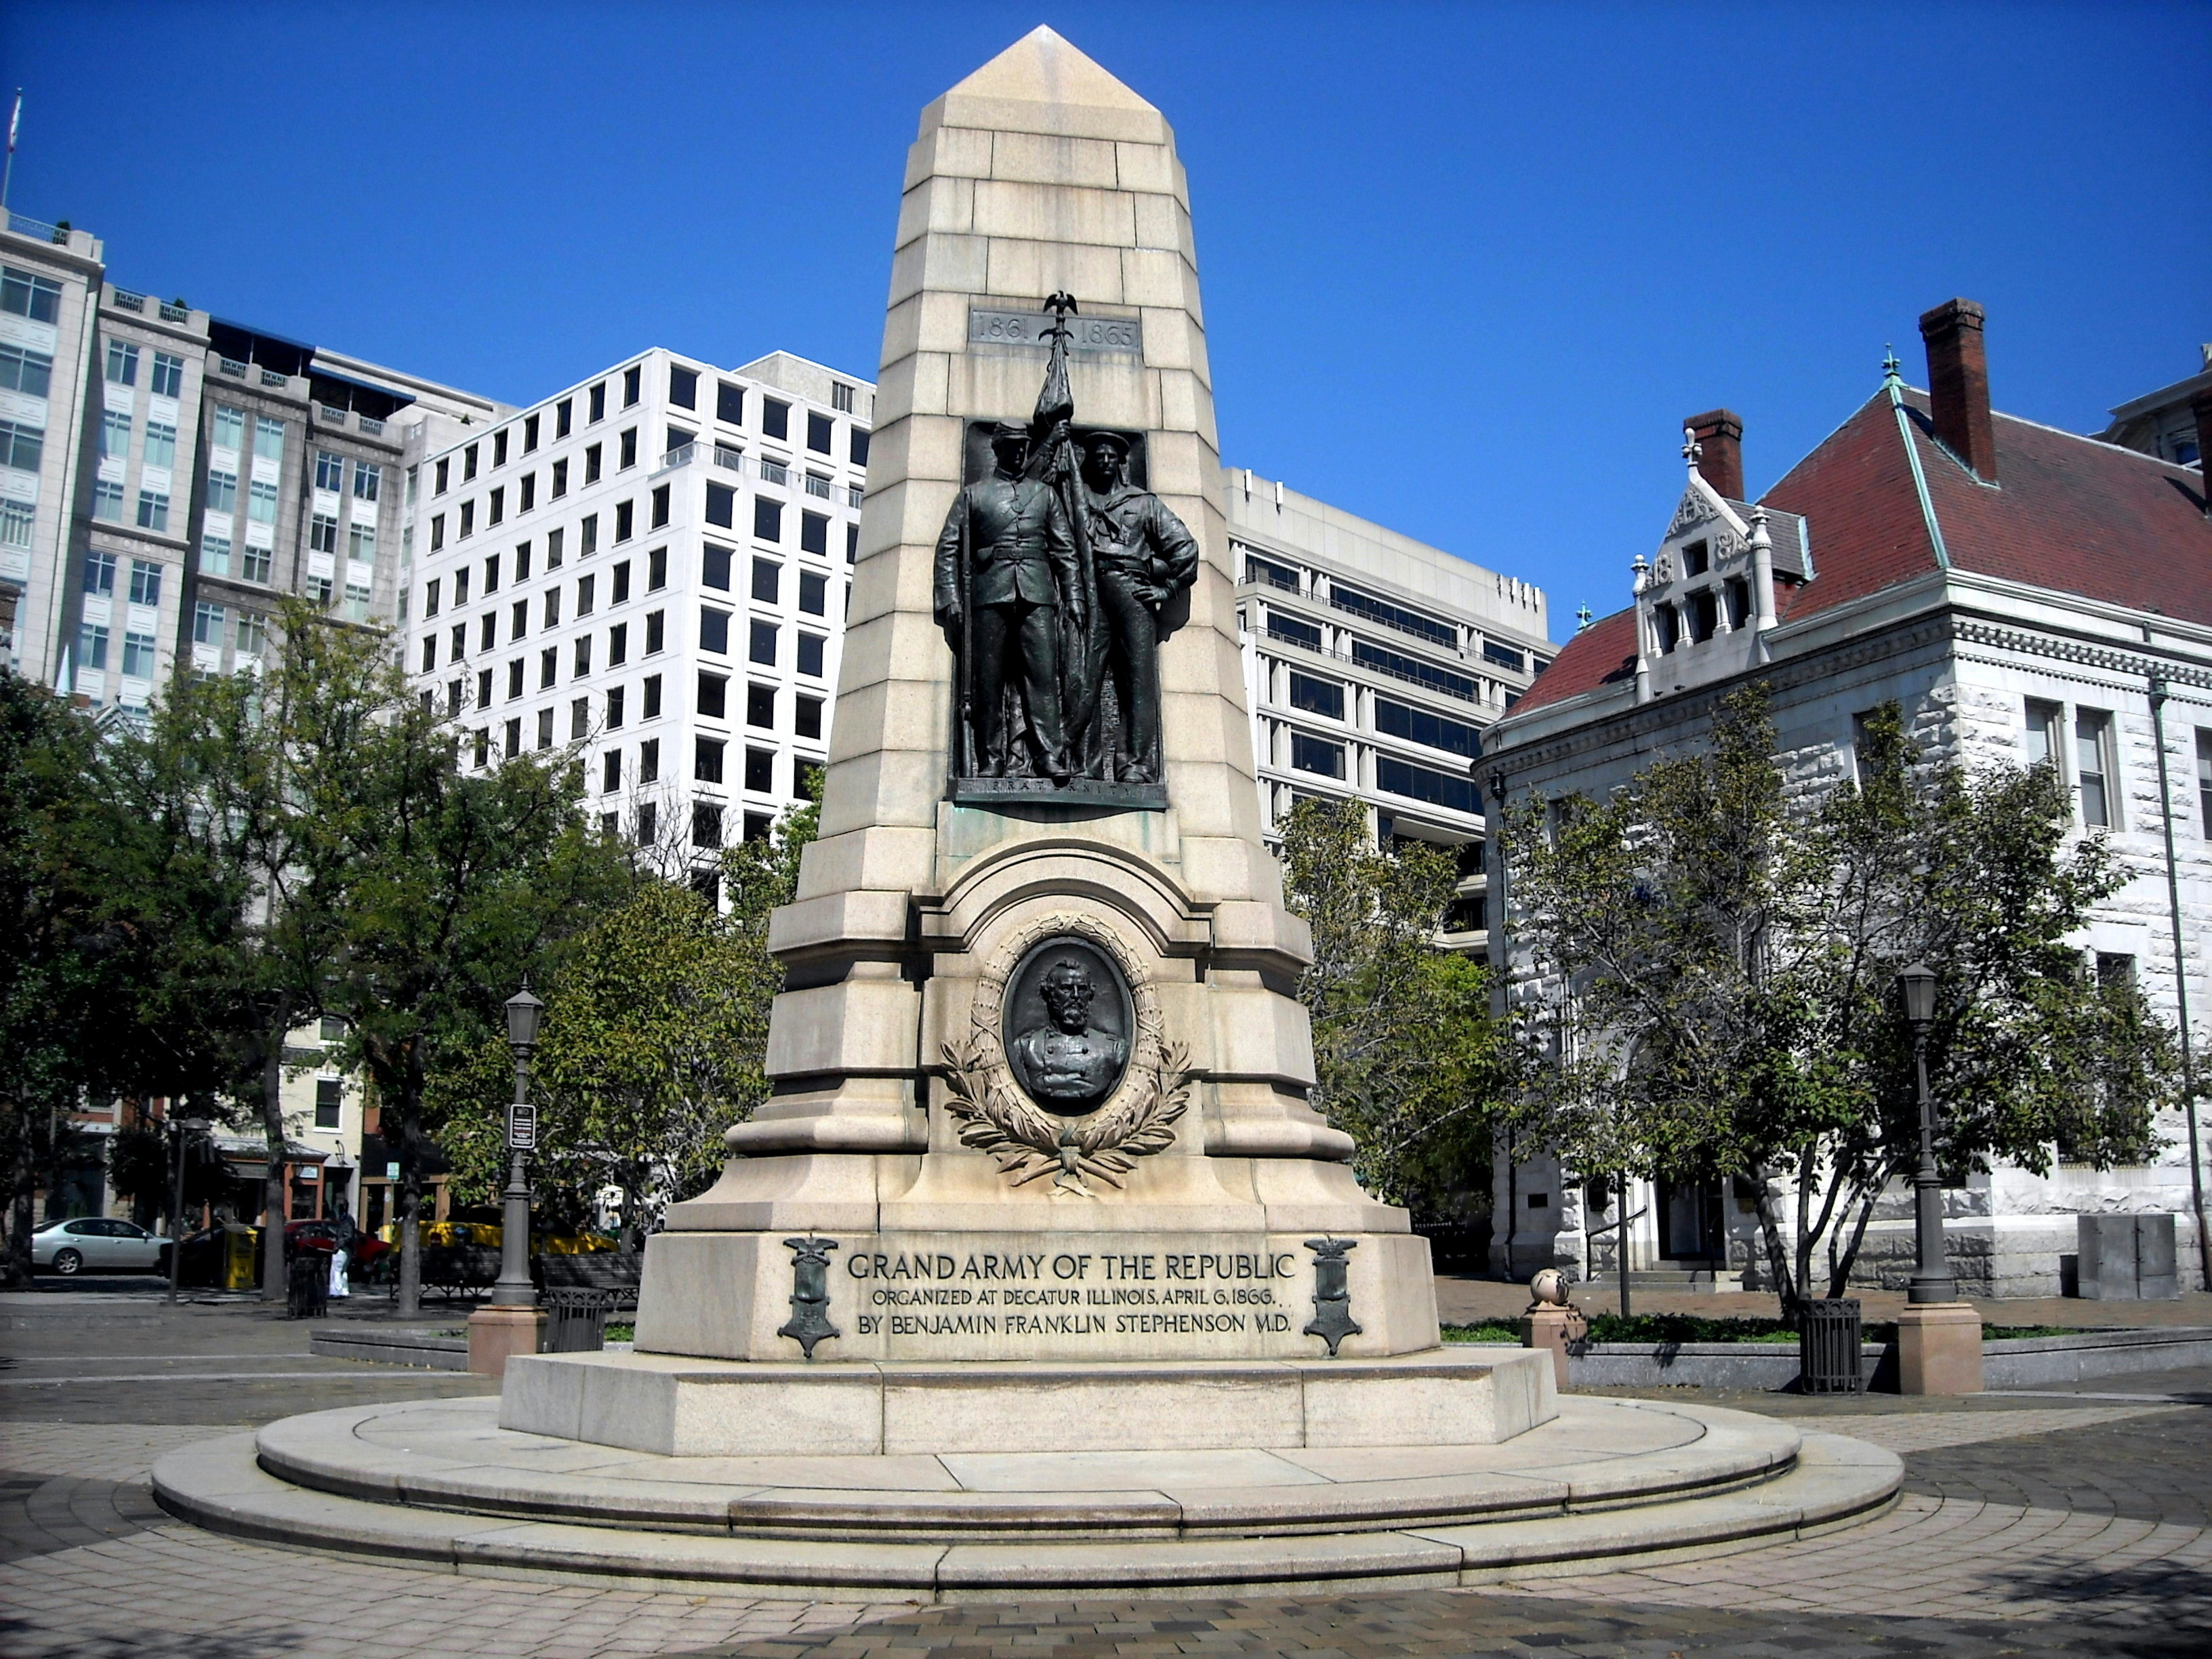 The Grand Army of the Republic Memorial (G.A.R. Memorial), also known as the Dr. Benjamin F. Stephenson Memorial, located at the intersection of 7th Street, C Street, and Pennsylvania Avenue, N.W., in the Penn Quarter neighborhood of Washington, D.C. The former National Bank of Washington is visible on the right-hand side. Sculpted by John Massey Rhind, and dedicated on July 3, 1909, the bronze sculpture honors Benjamin F. Stephenson, M.D., founder of the G.A.R. Photo taken on September 19, 2009.